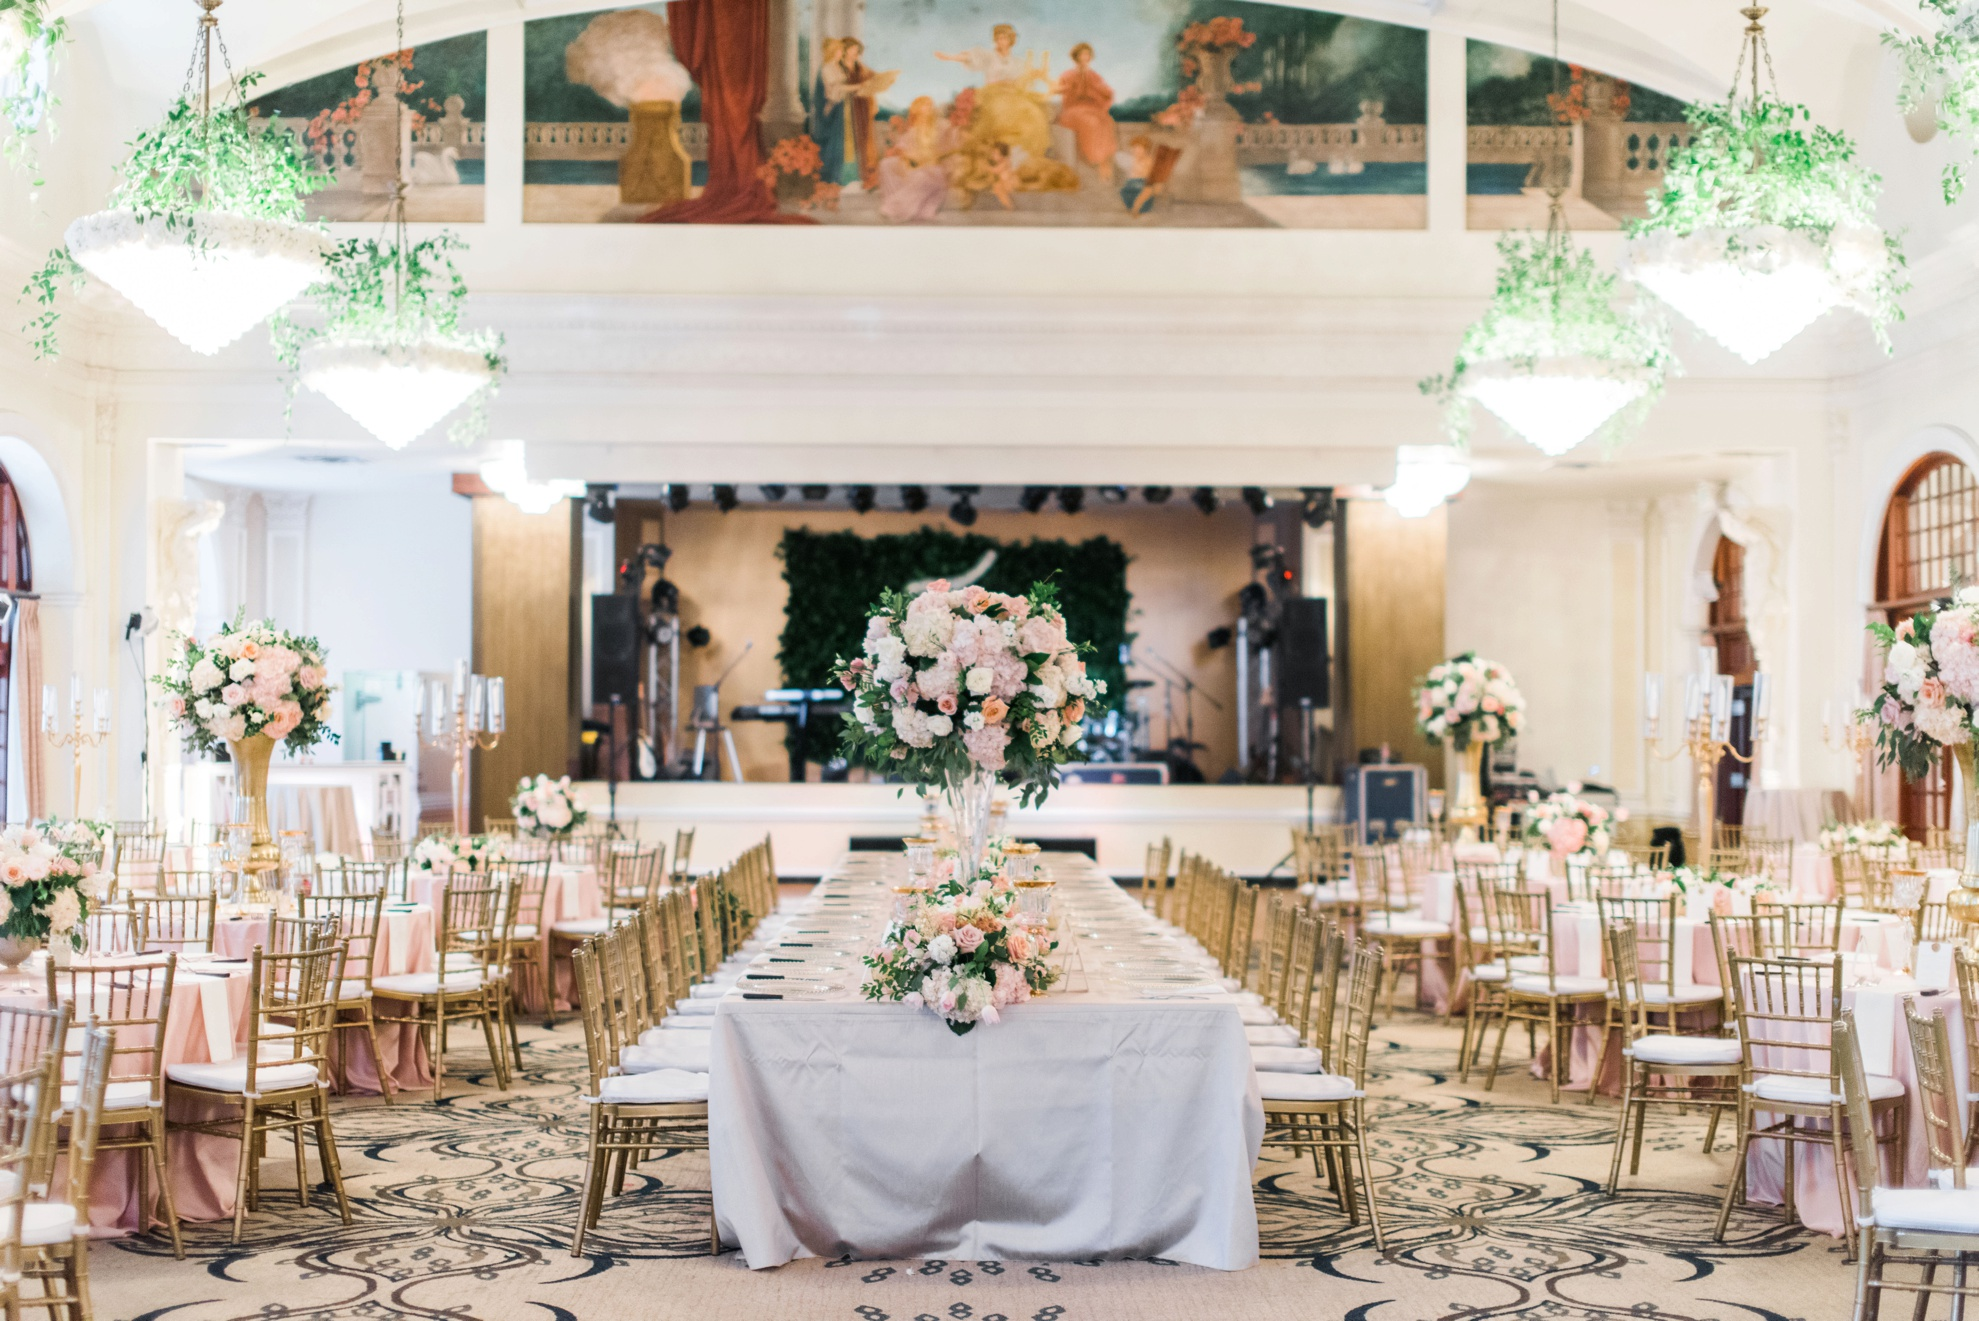 The-Crystal-Ballroom-At-The-Rice-Hotel-Wedding-Reception-Photographer-Dana-Fernandez-Photography-Two-Be-Wed-Johanna-Terry-Events-10.jpg